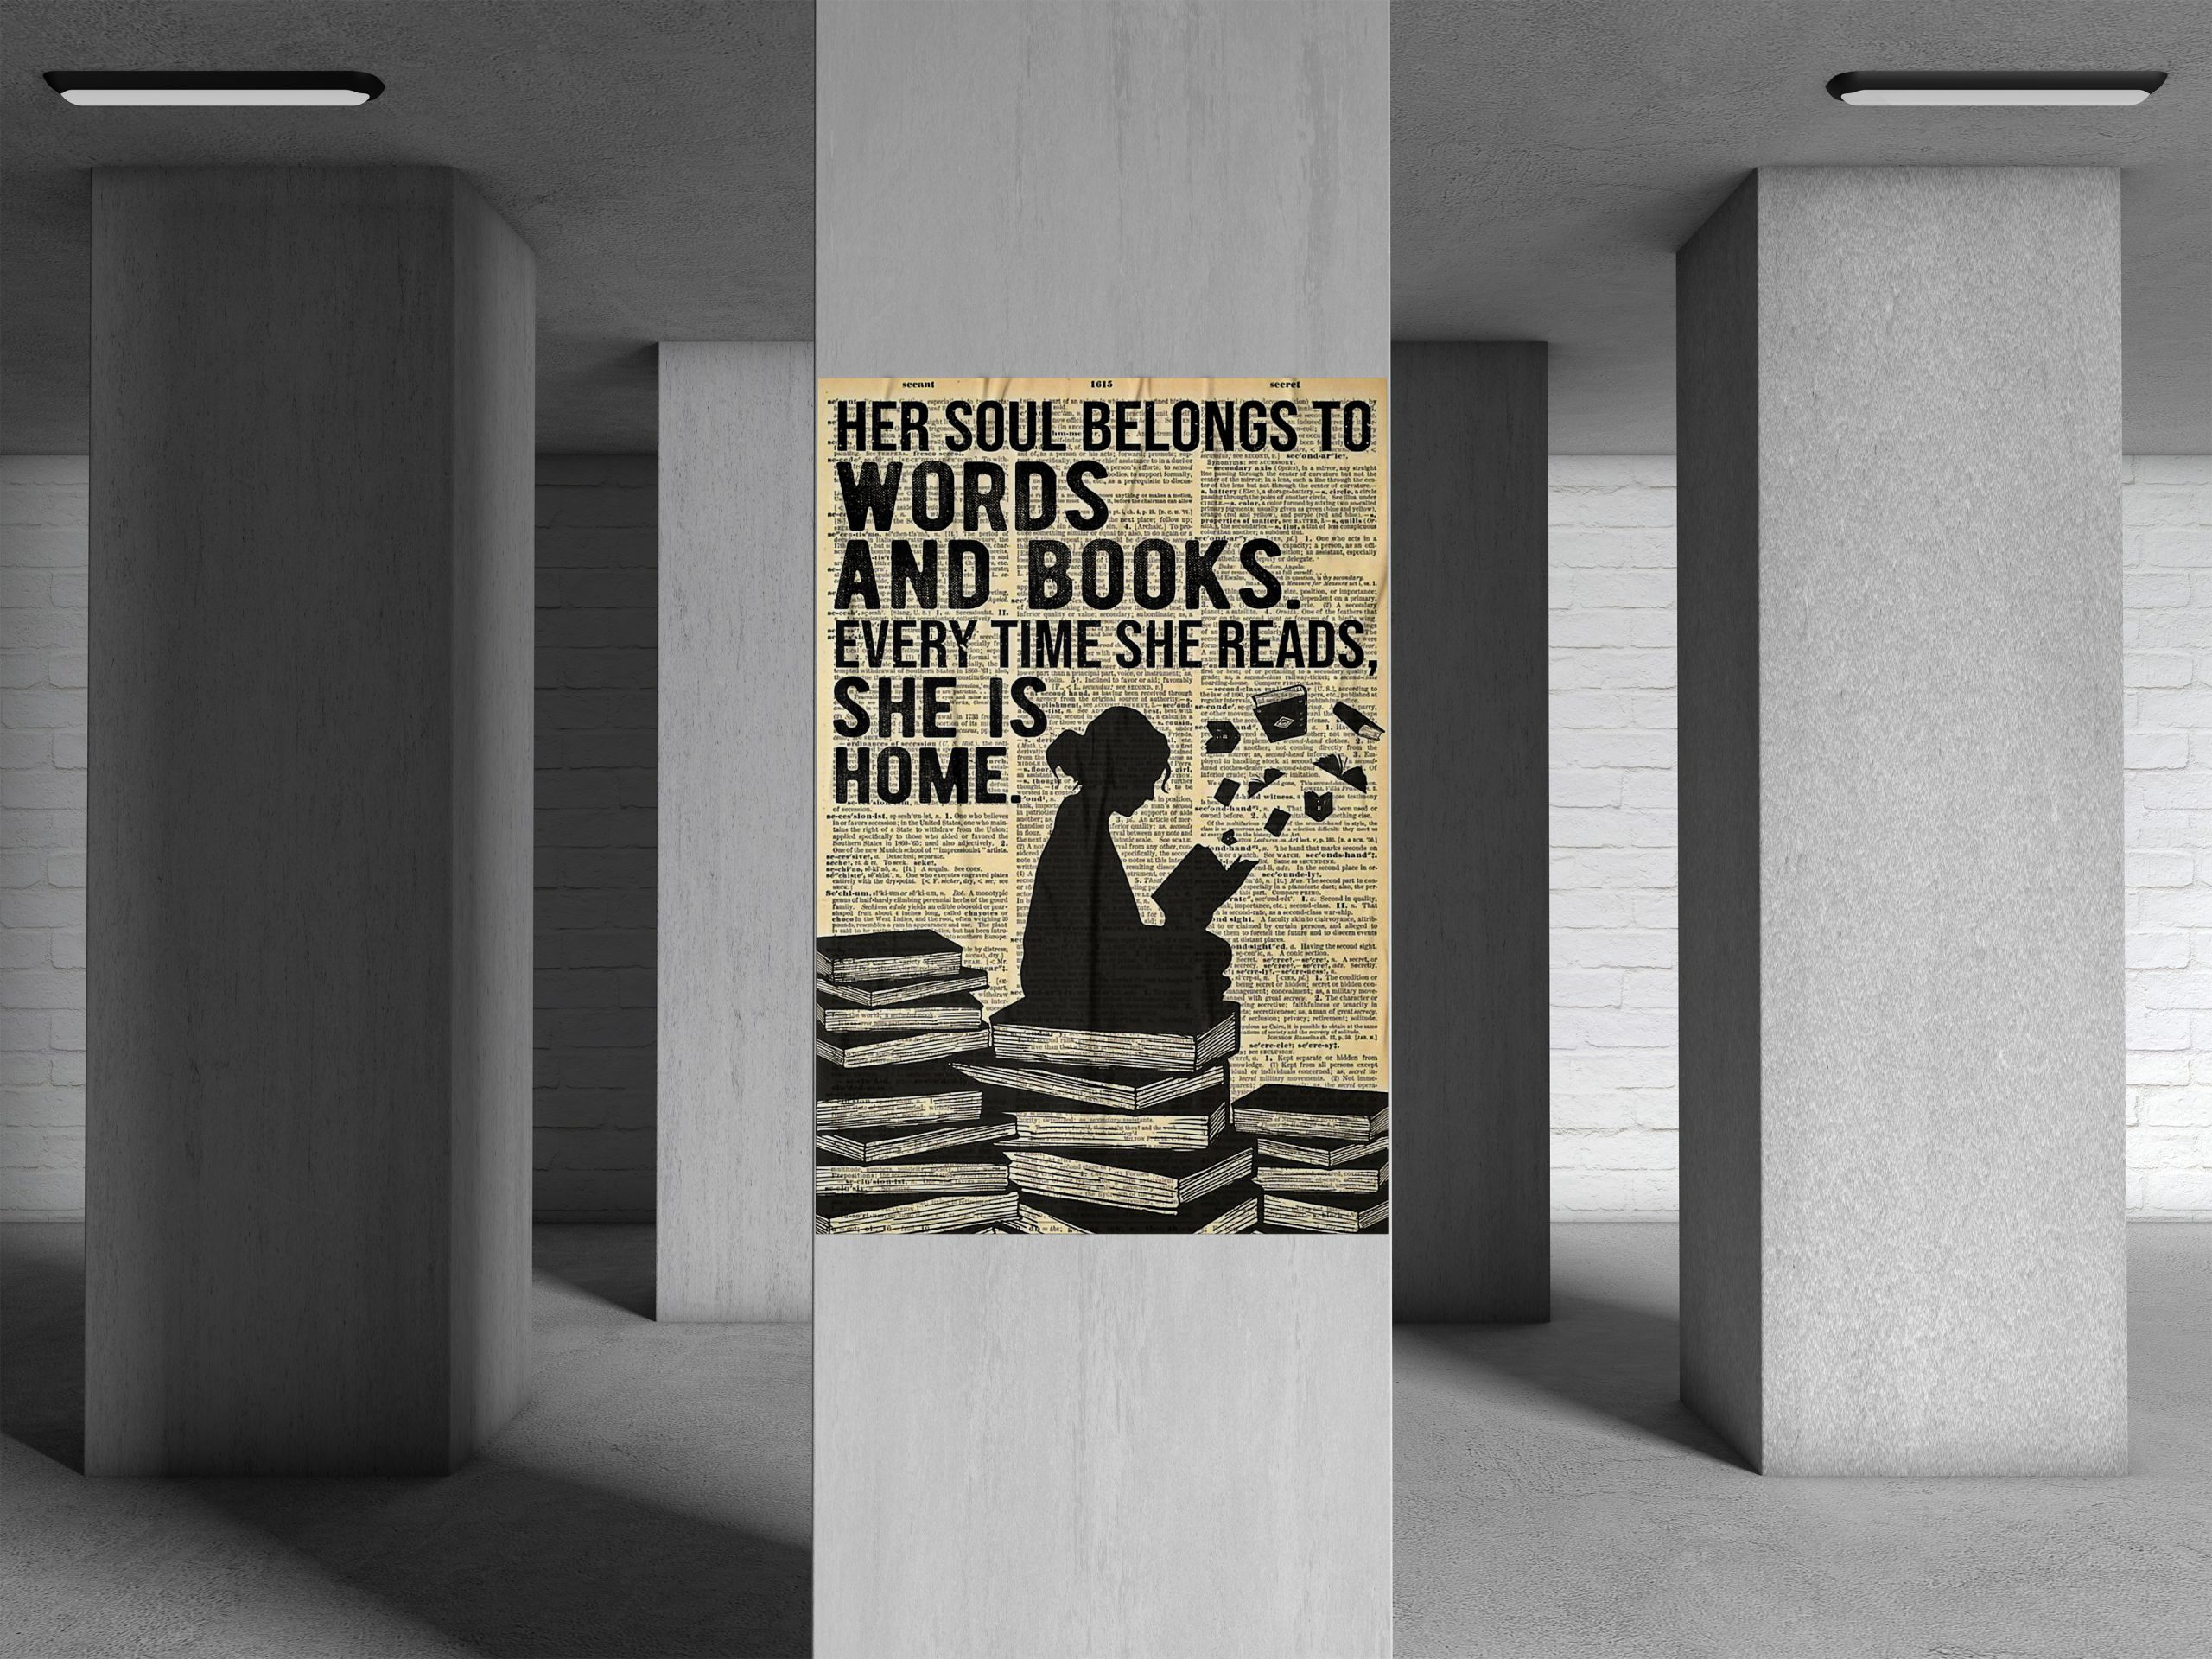 Her Soul Belong To Words and Books Every Time She Reads Poster 1